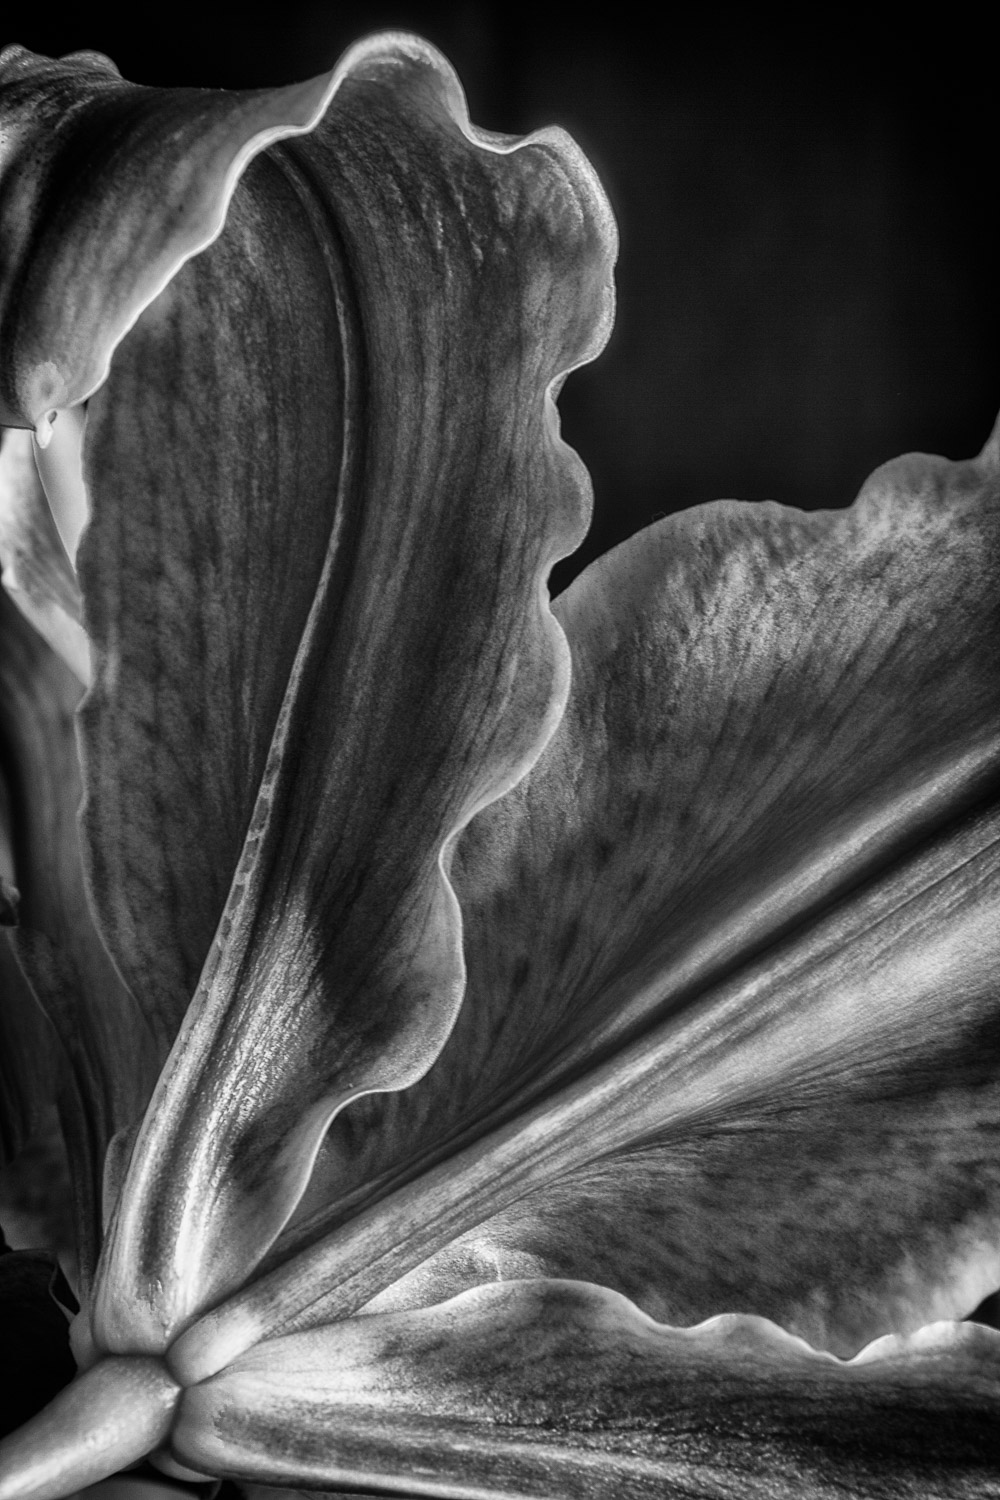 Tulip-Leaf-Curled-Close-Up-BW.jpg